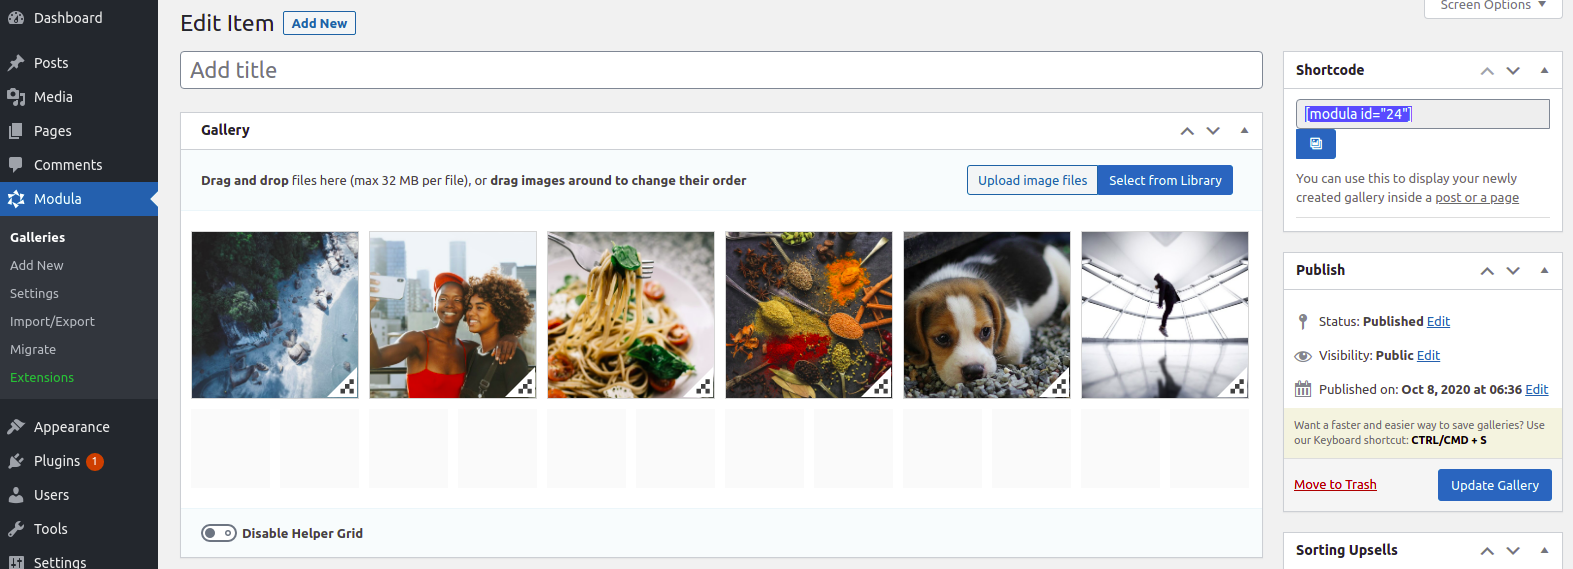 screenshots of the modula image gallery plugin